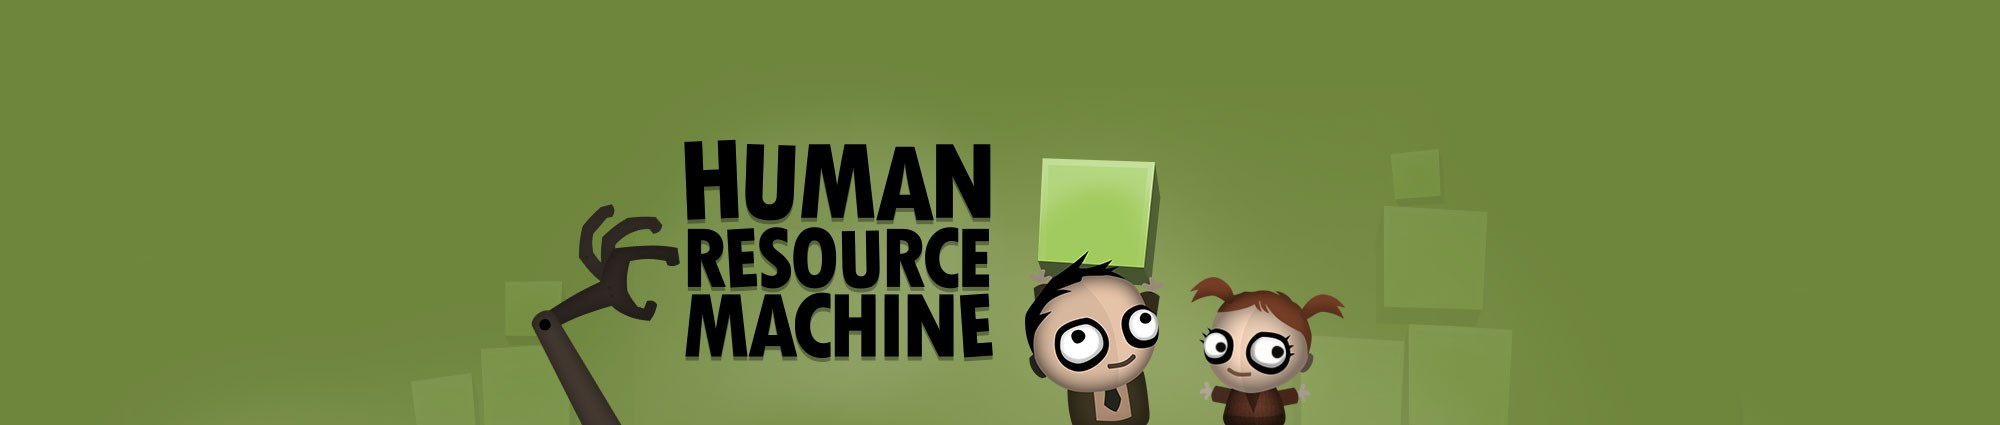 human resource machine 08012016 4